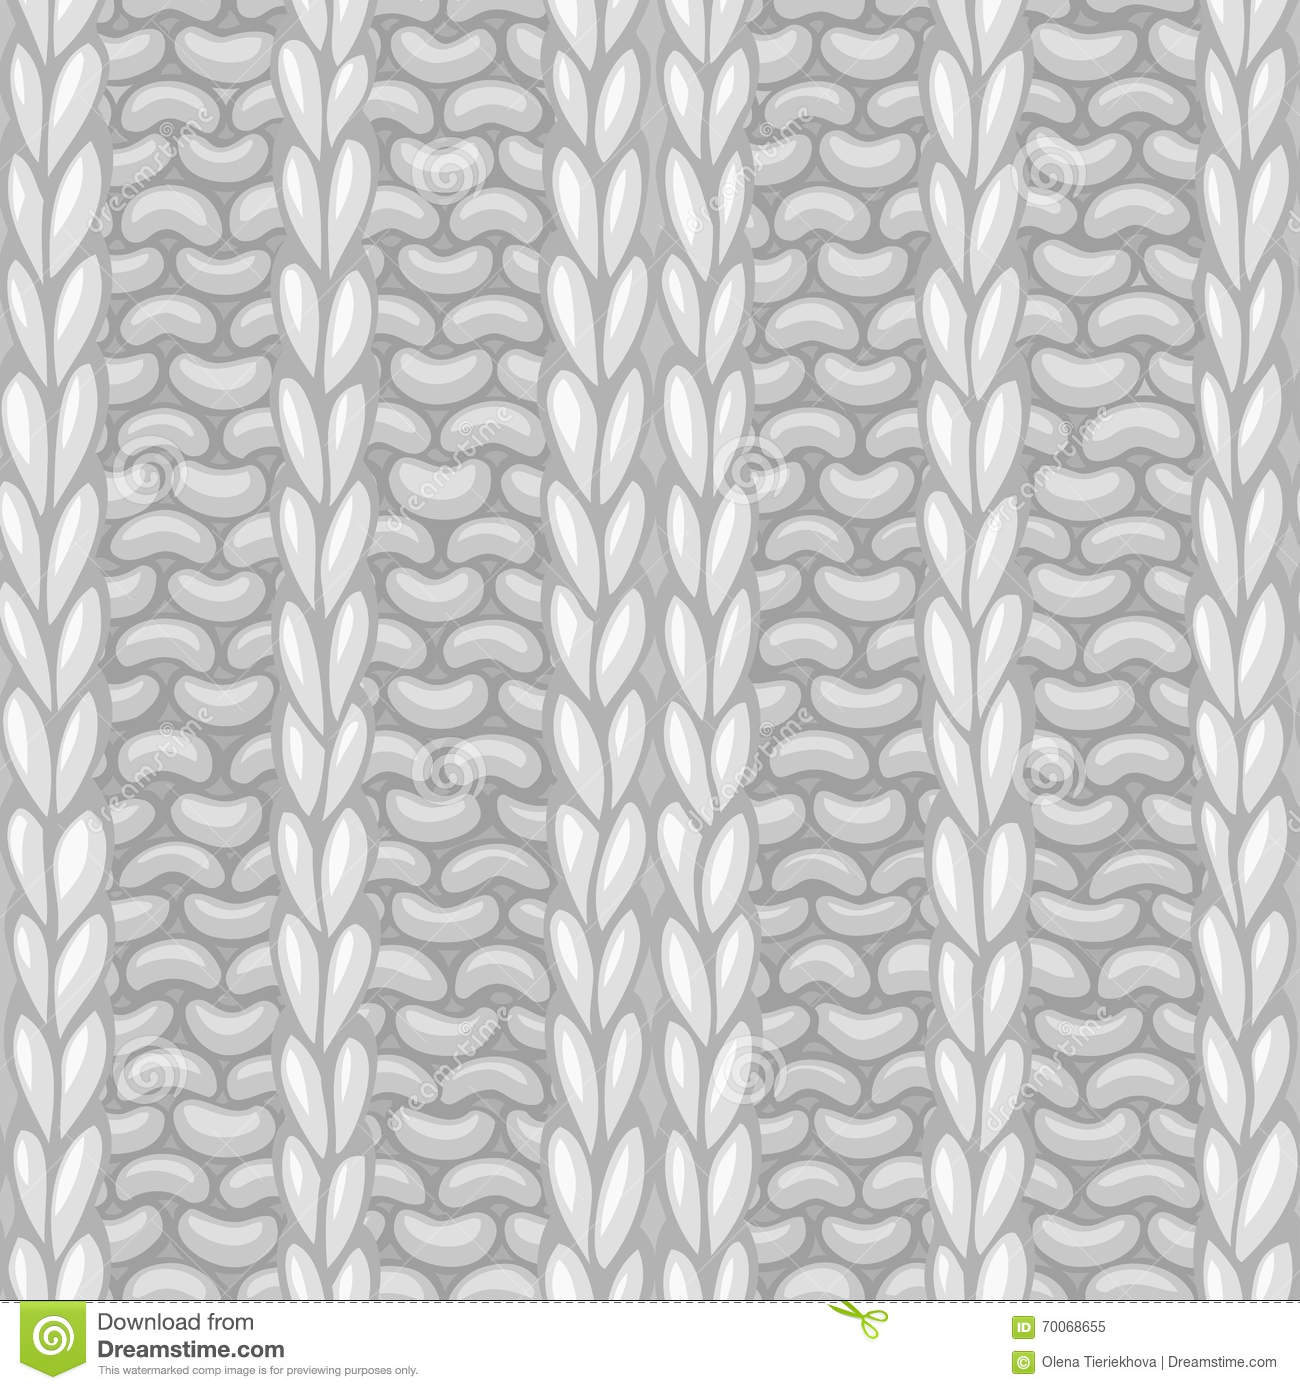 Knitting Stitches Vector : Seamless Ribbing Stitch Pattern. Stock Vector - Image: 70068655